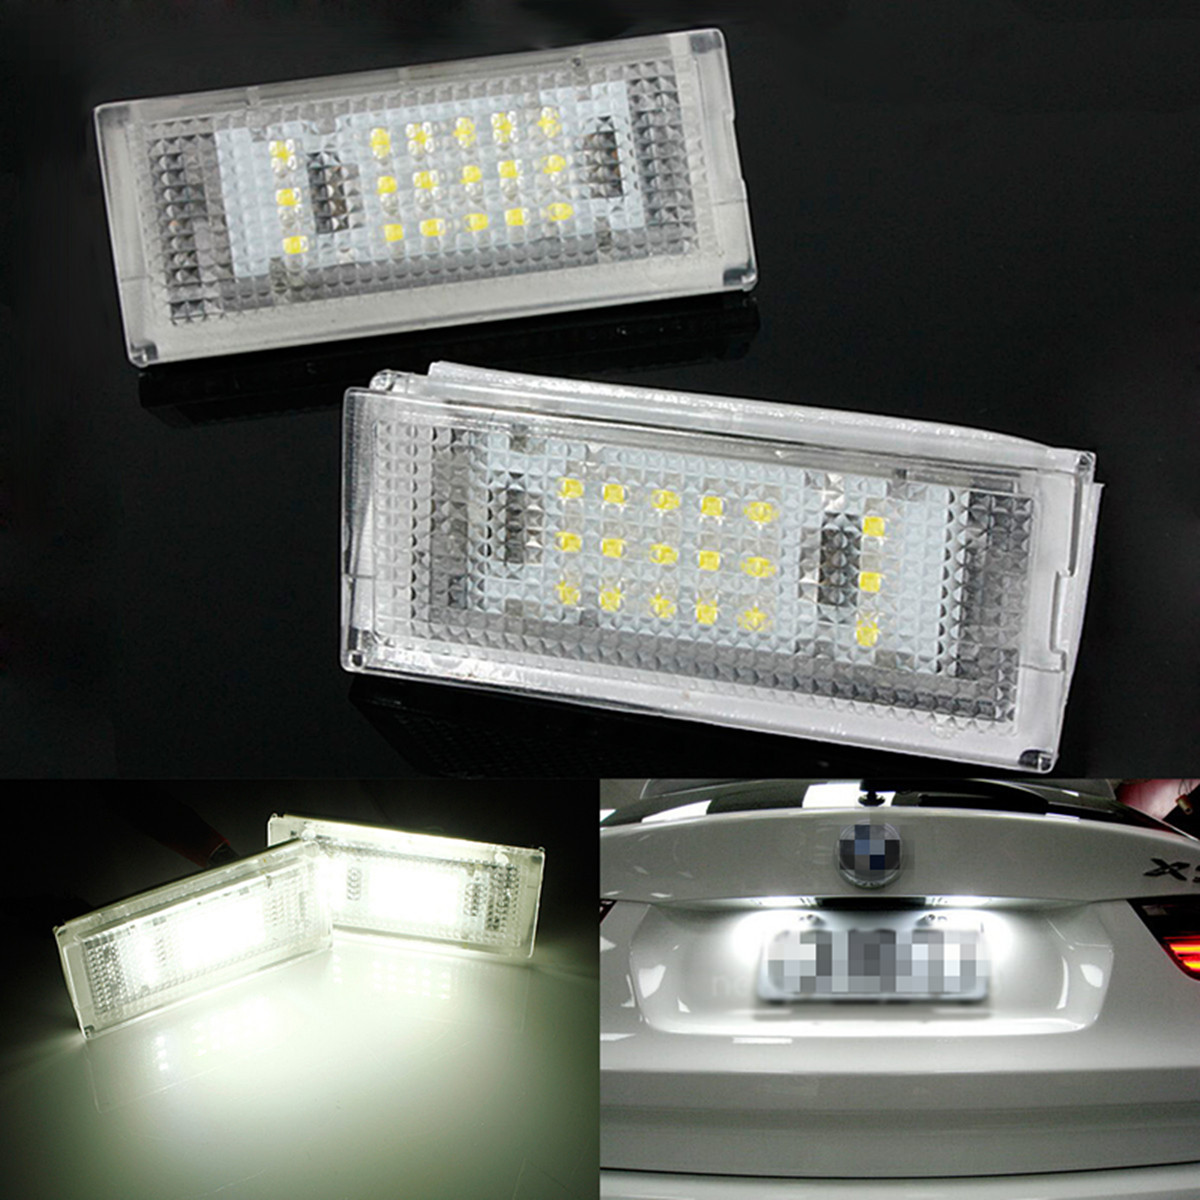 2Pcs 18 LED 6000K For HID License Plate Light Number Plate Lamp For BMW E46 4D 4Doors 323i 325i 328i 99-03 Error Free 2pcs 12v white led license plate light number lamp for renault twingo clio megane lagane error free